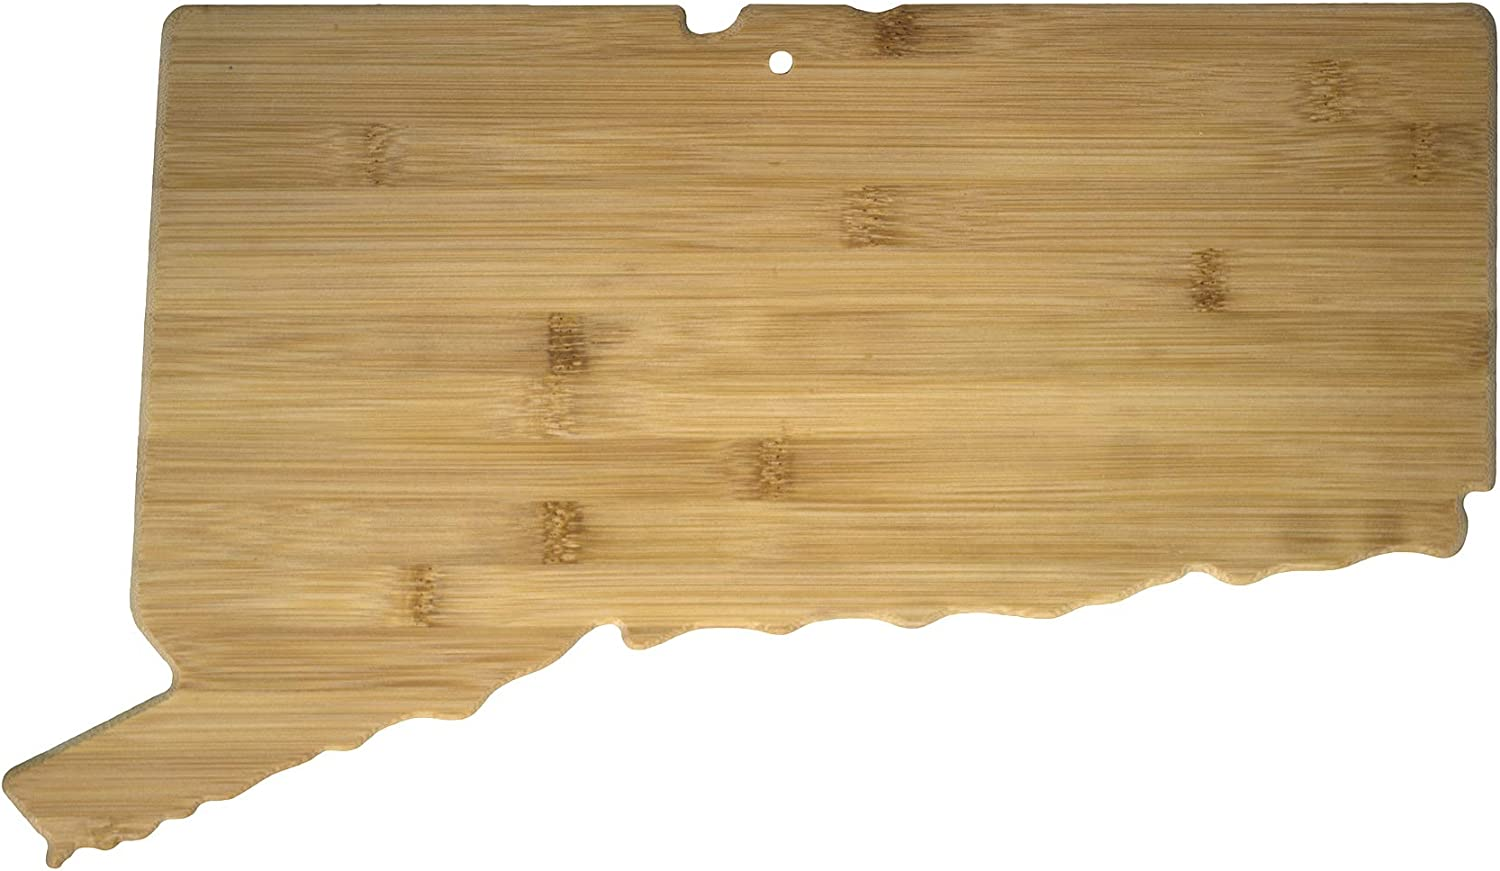 Totally Bamboo Connecticut State Shaped Bamboo Serving & Cutting Board